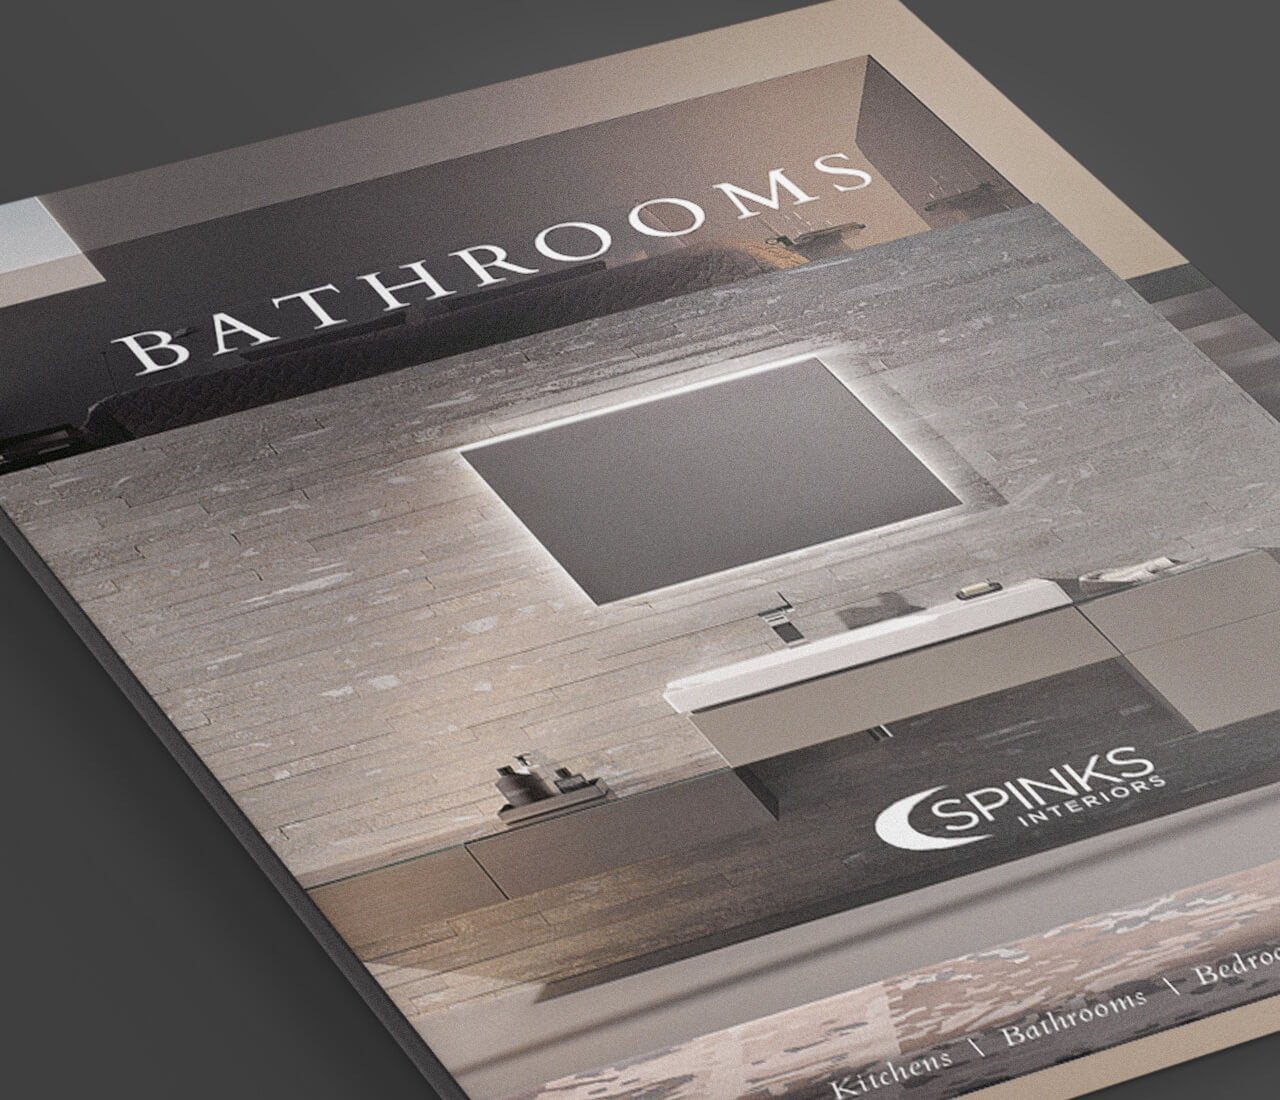 the spinks interiors folder showing high quality print design